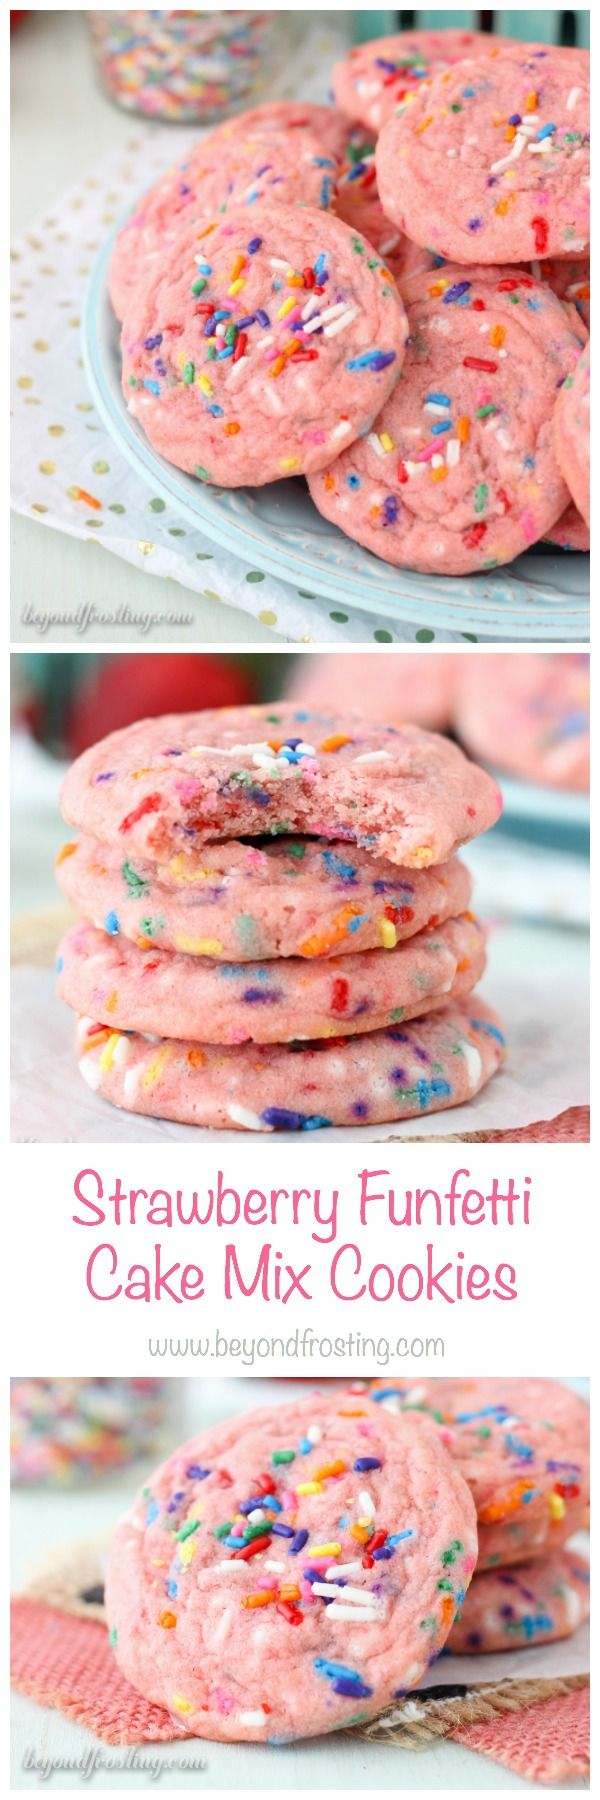 Take your funfetti cookies to the next level with the strawberry cake mix. These Strawberry Funfetti Cake Mix Cookies are so soft and chewy, they will be your new favorite cookie.